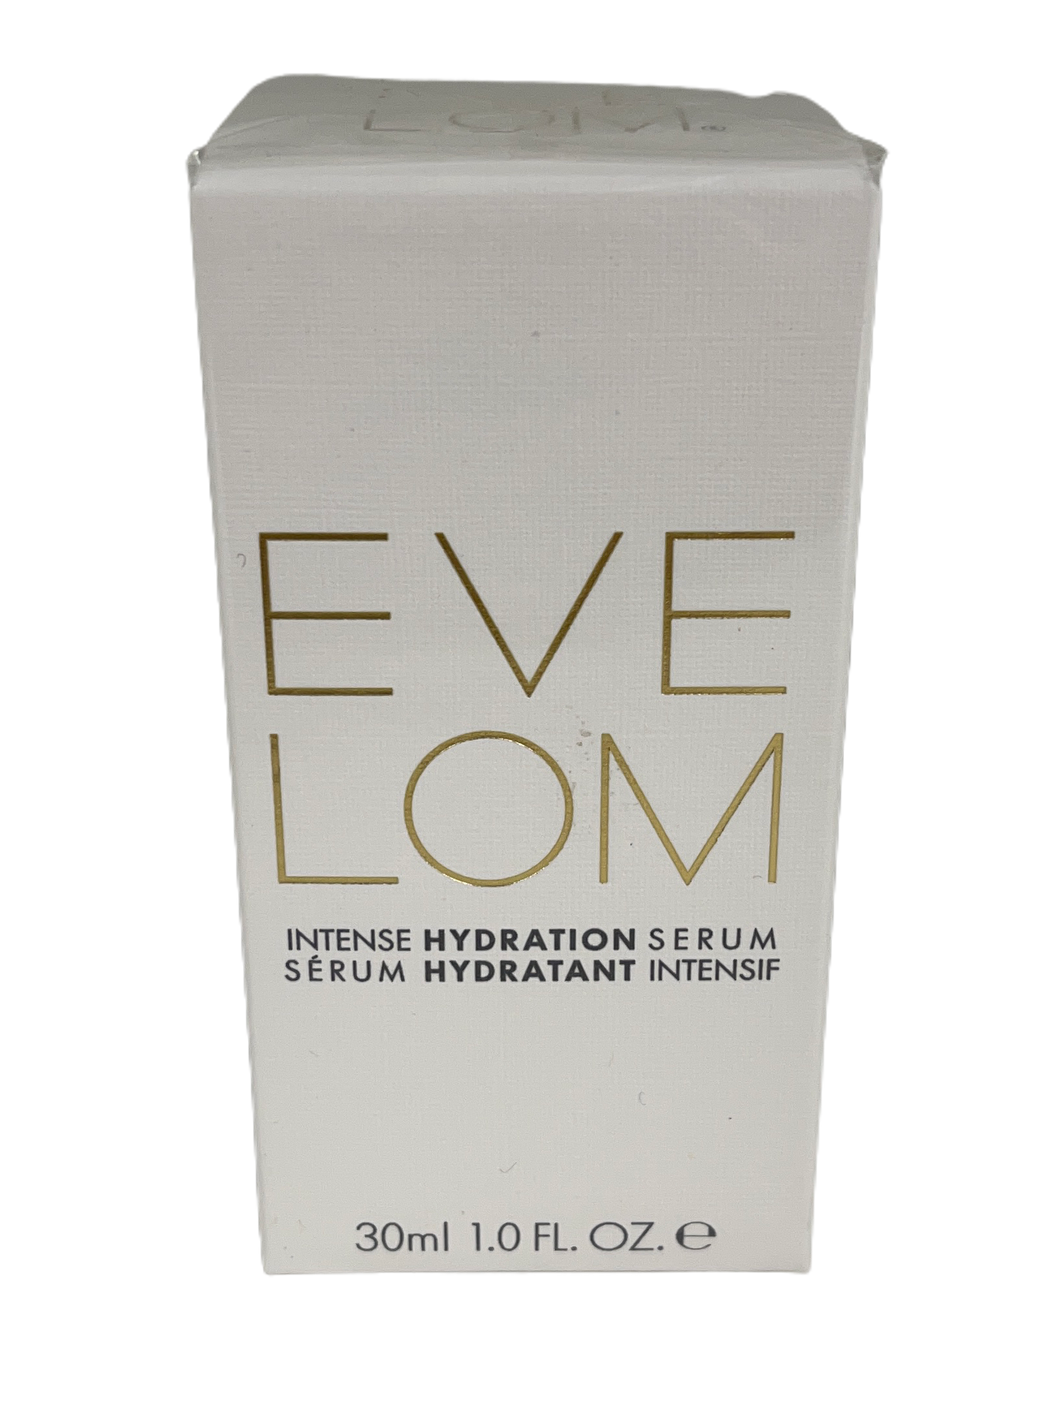 EVE LOM Intense Hydration Serum 1 oz.